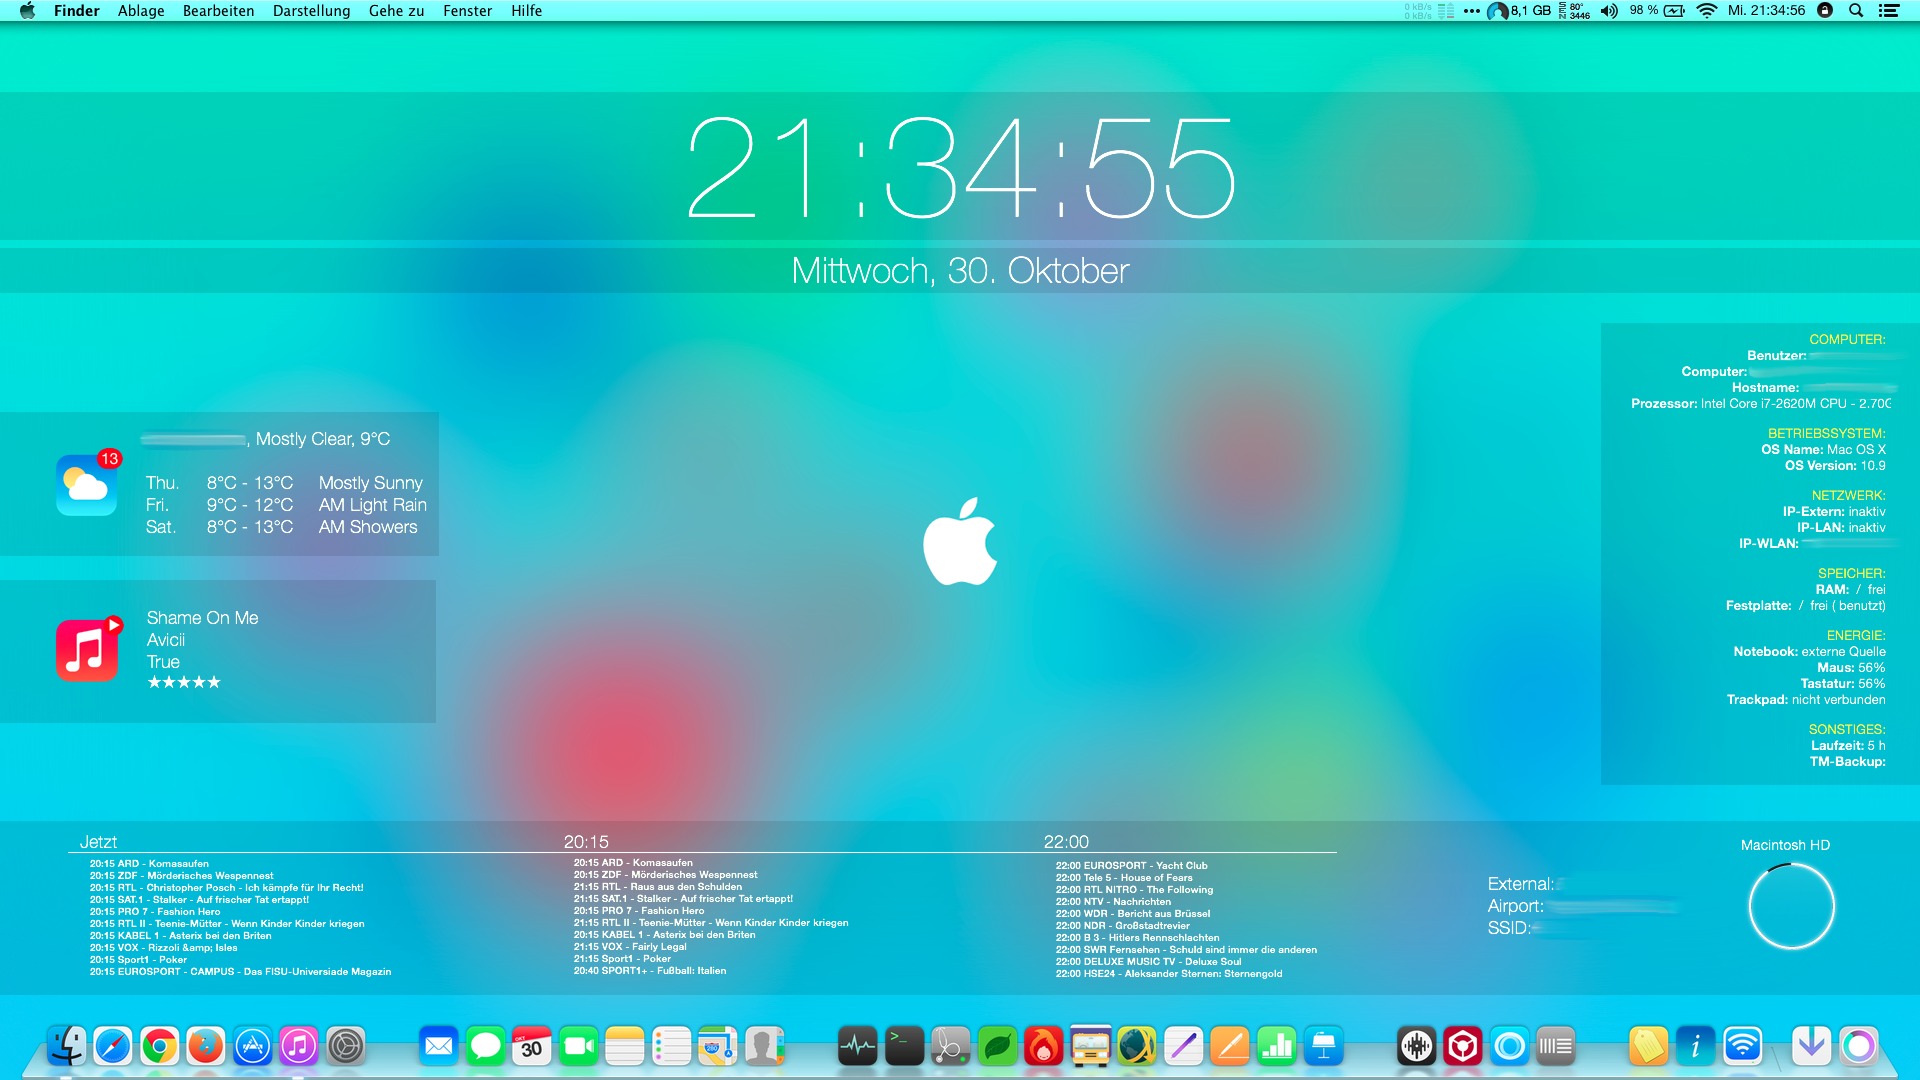 Ios 7 Iphone Wallpaper: IOS Wallpapers For Mac